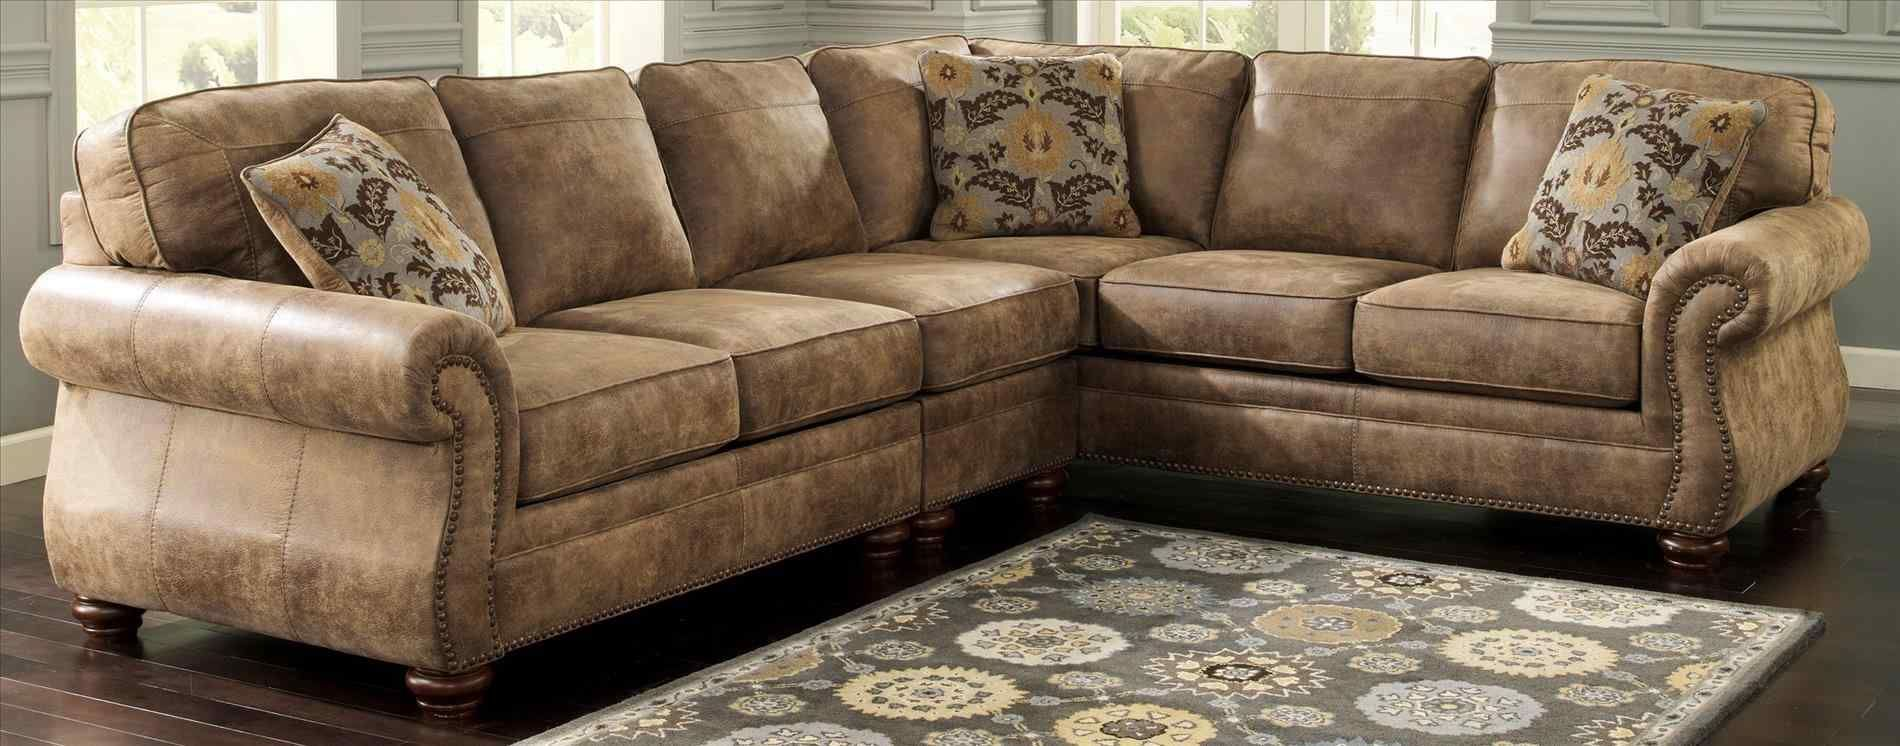 leather sofas cheap prices sofa bed sale grey deep for in gallery shop with couches sears sectional roselawnlutheran